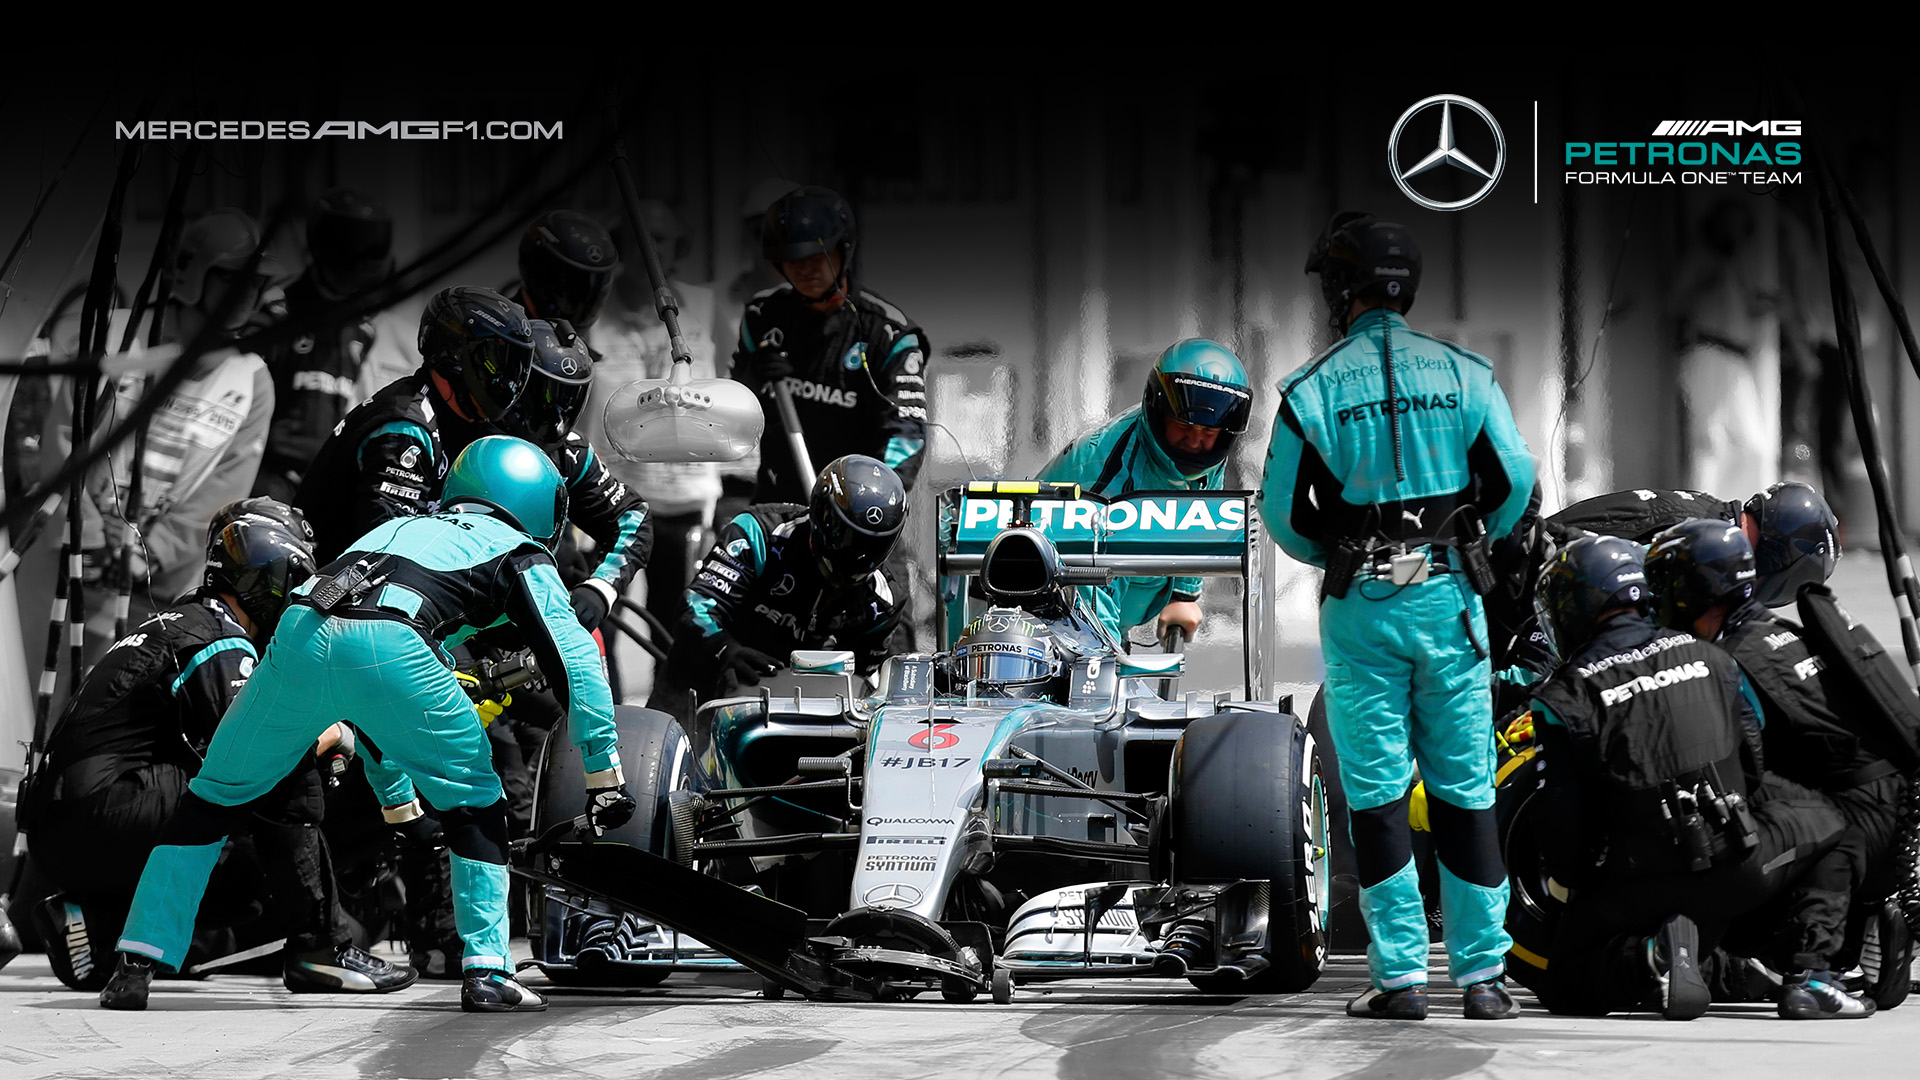 Mercedes w08 f1 wallpaper 8